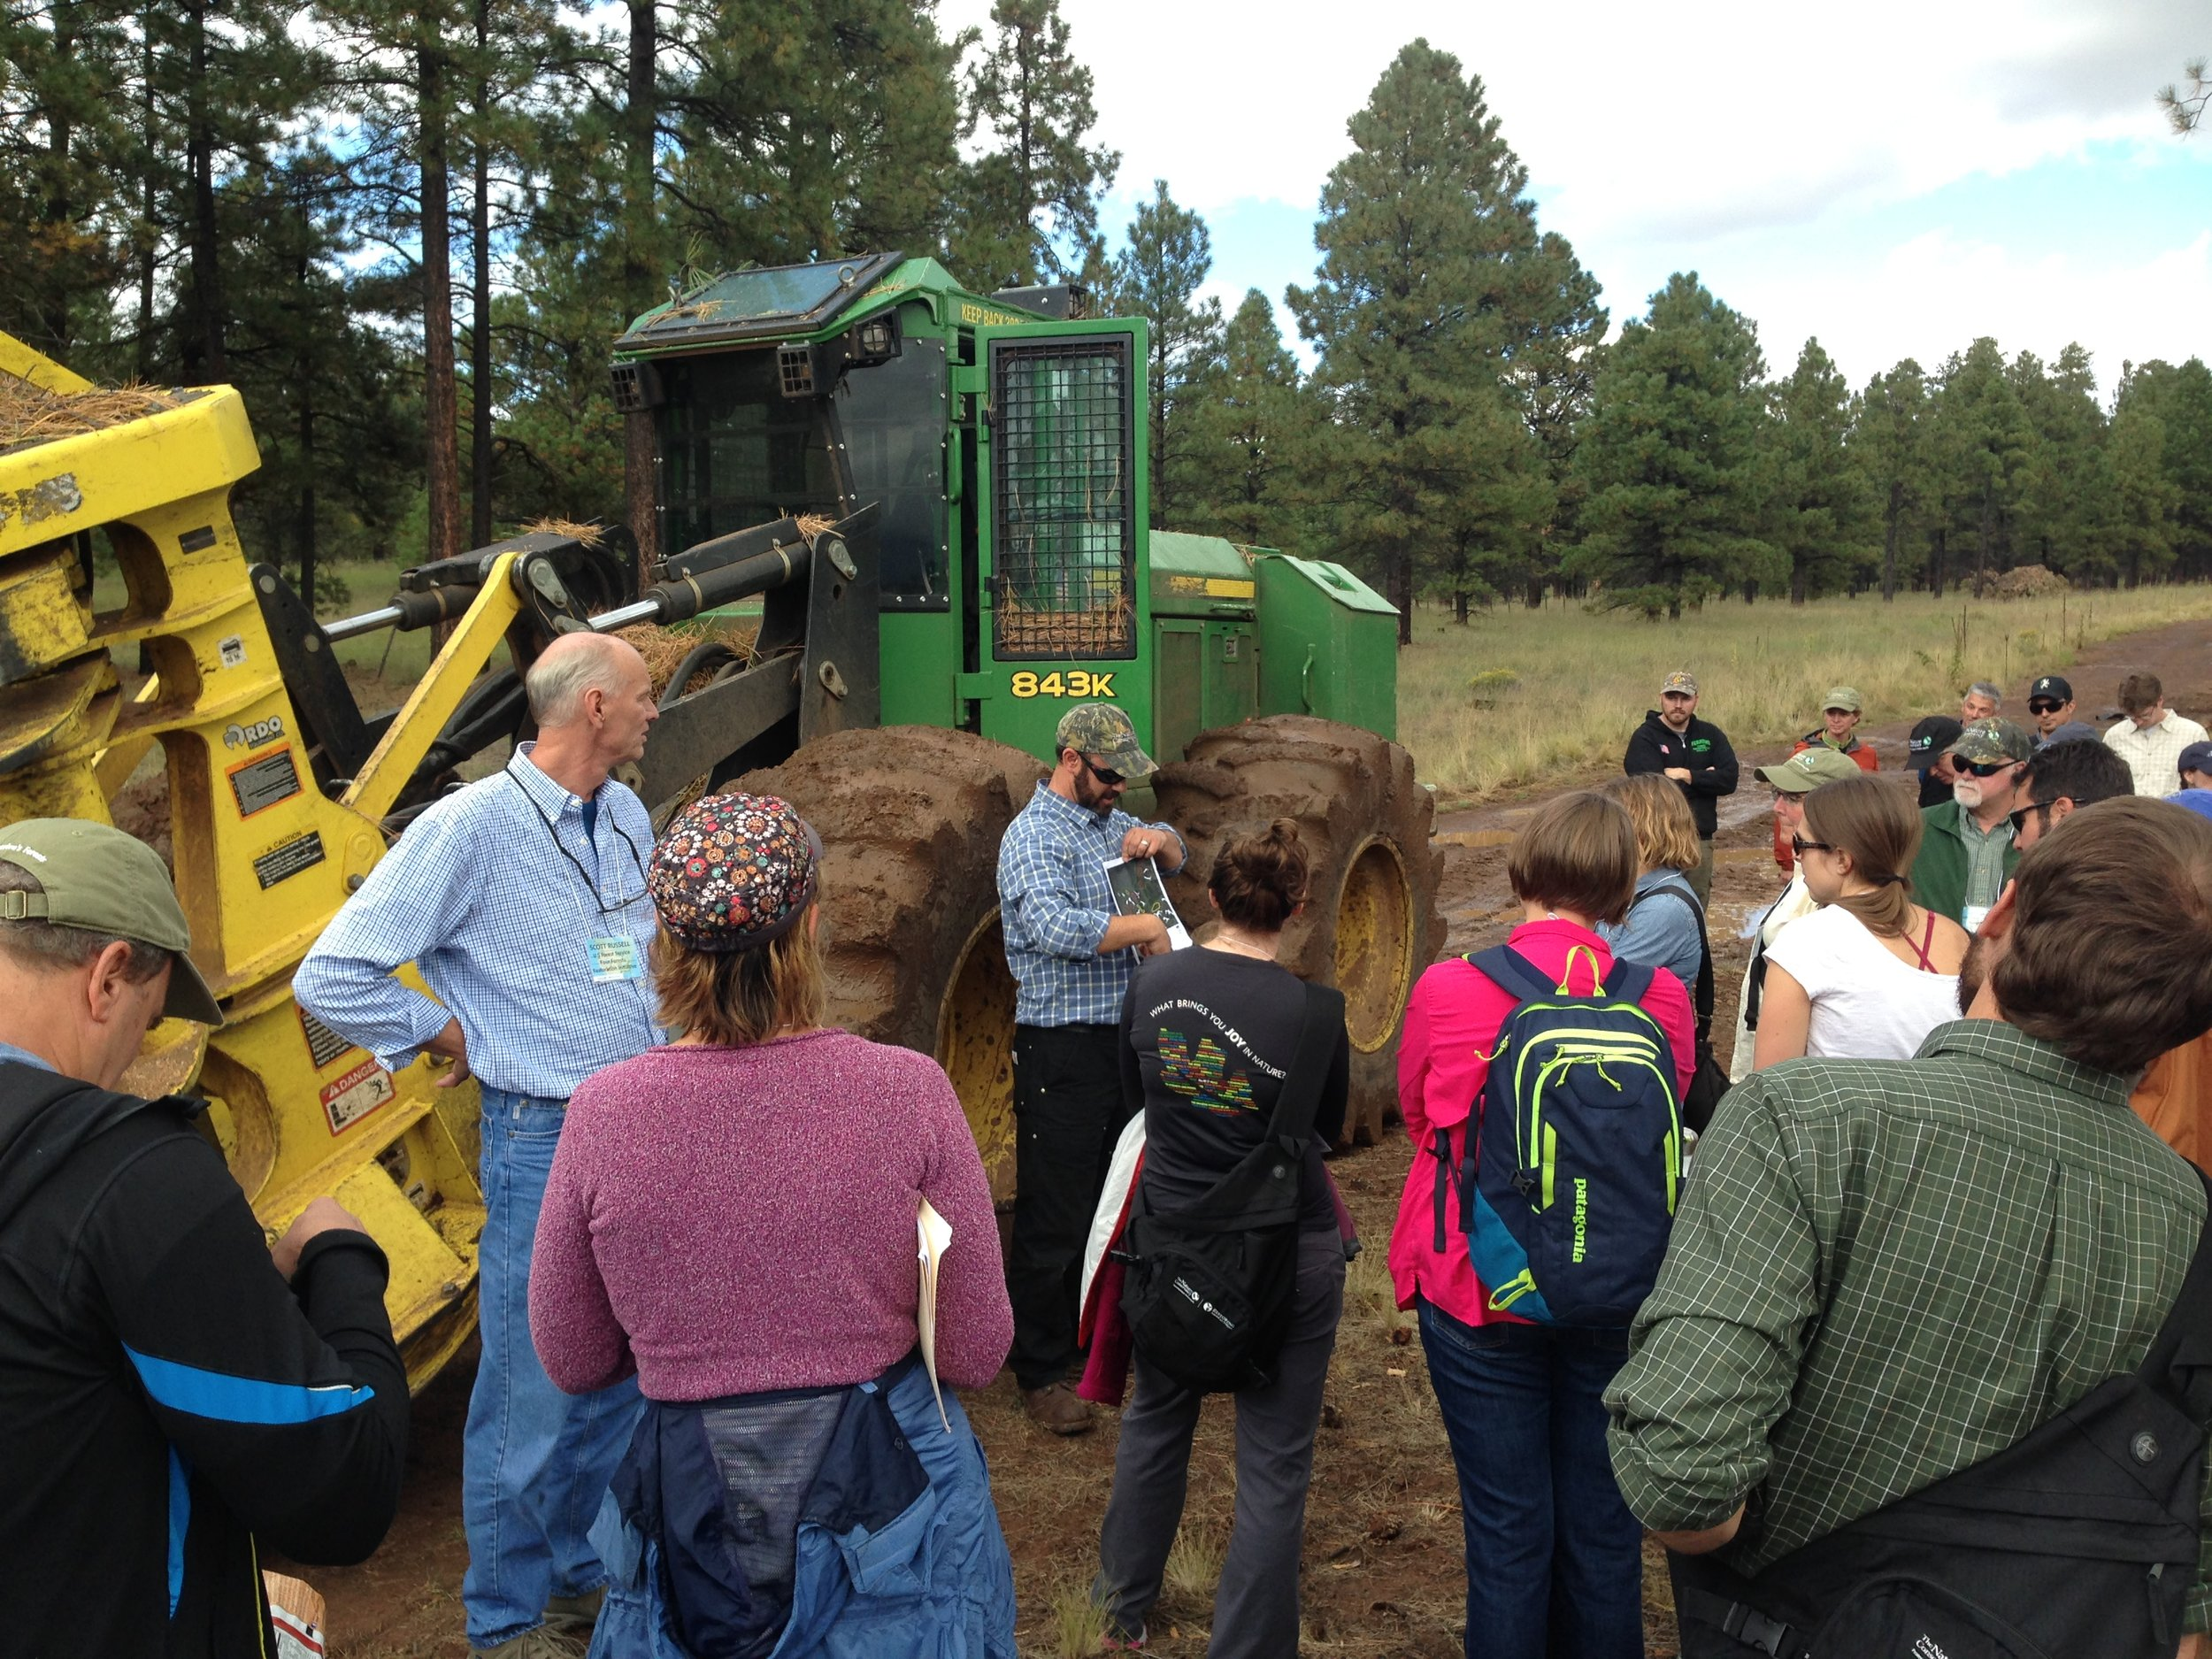 Neil Chapman (TNC- Arizona) describing a forest thinning project using the in-cab technology.